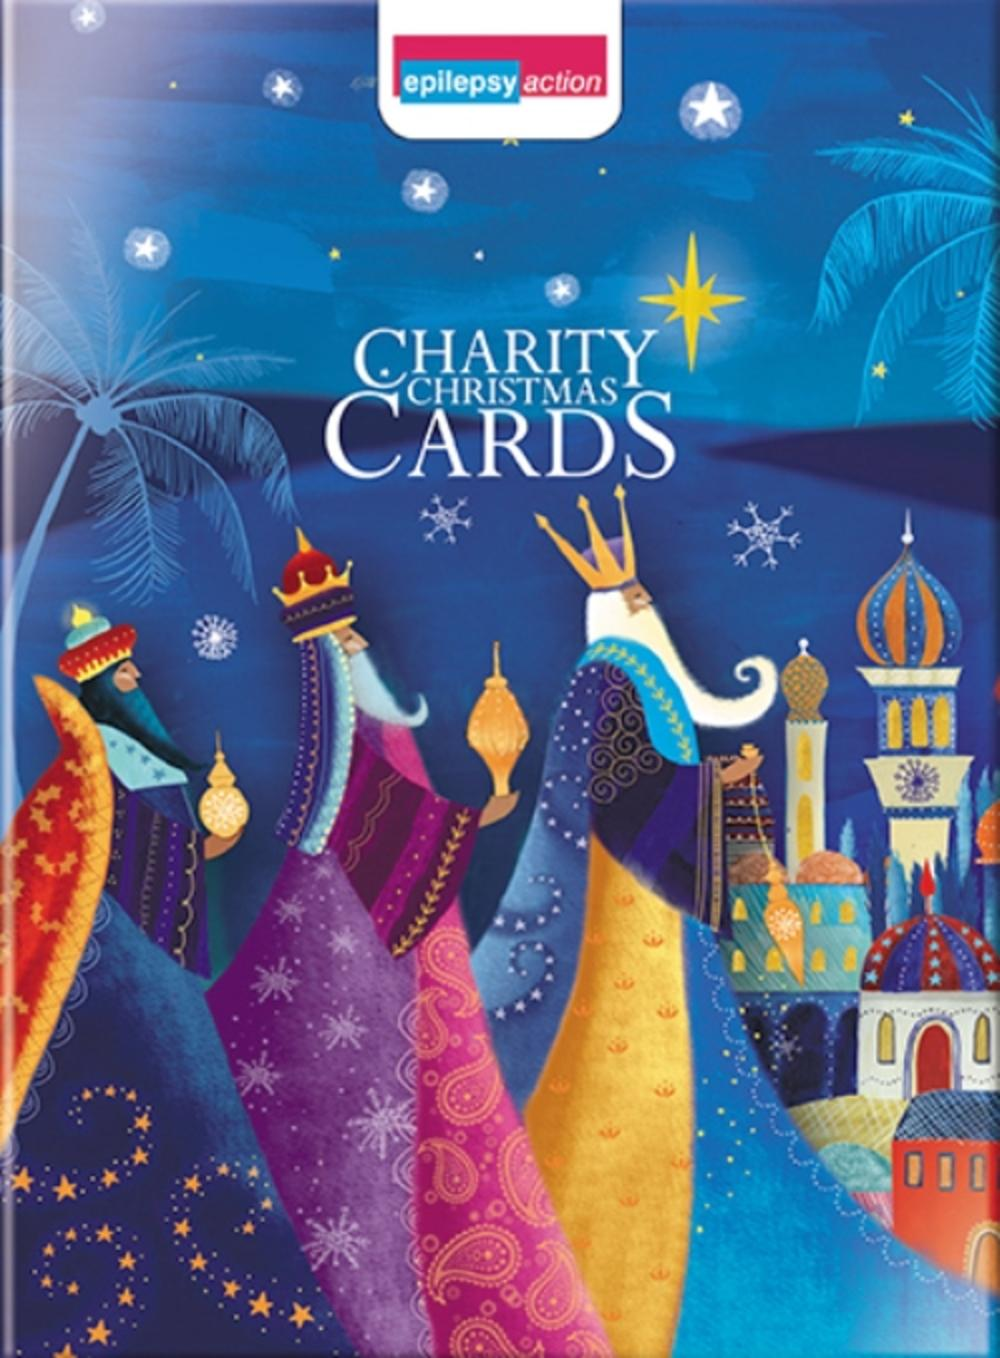 Box of 12 Religious Epilepsy Action Charity Christmas Cards